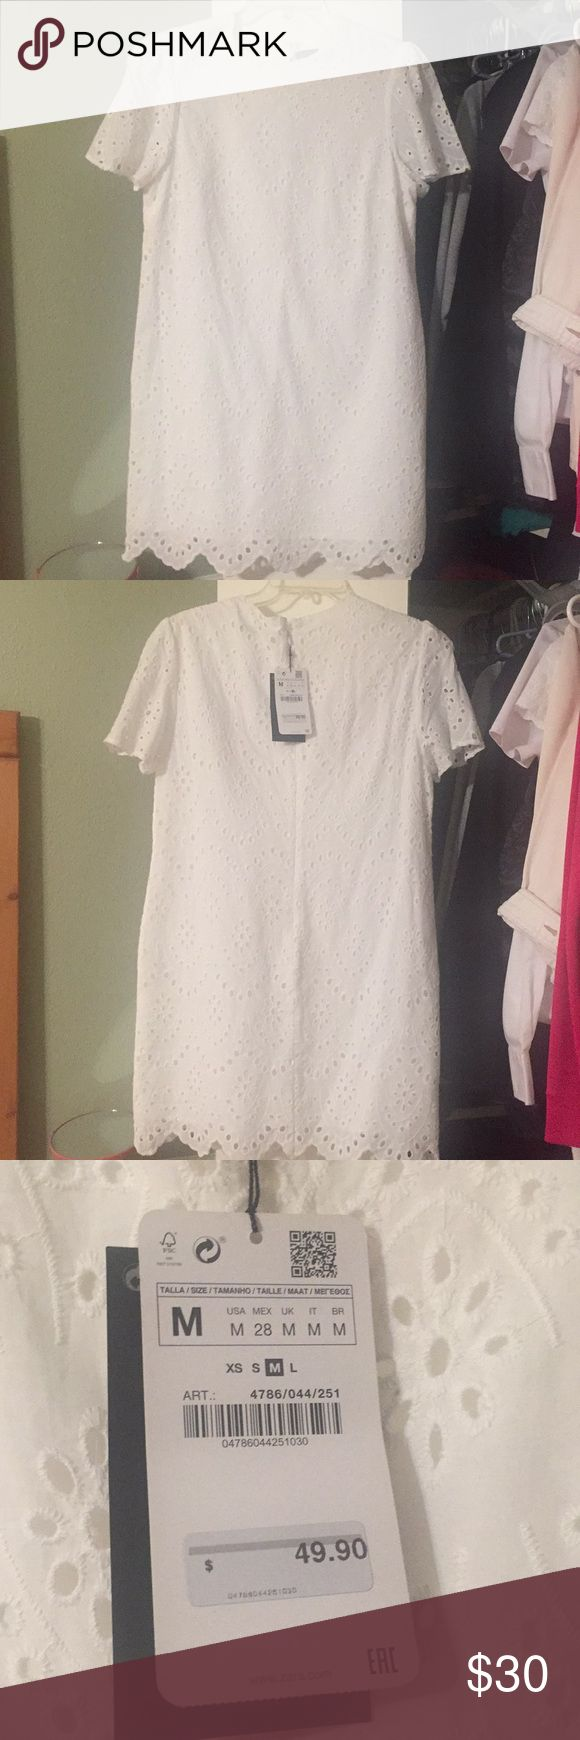 Perfect brunch dress! Brand new, never worn white dress from Zara. It's a little big on me, still has the tag and had some makeup near the neck area which will just come off when you wash it. If you want more pictures, just ask :) Zara Dresses